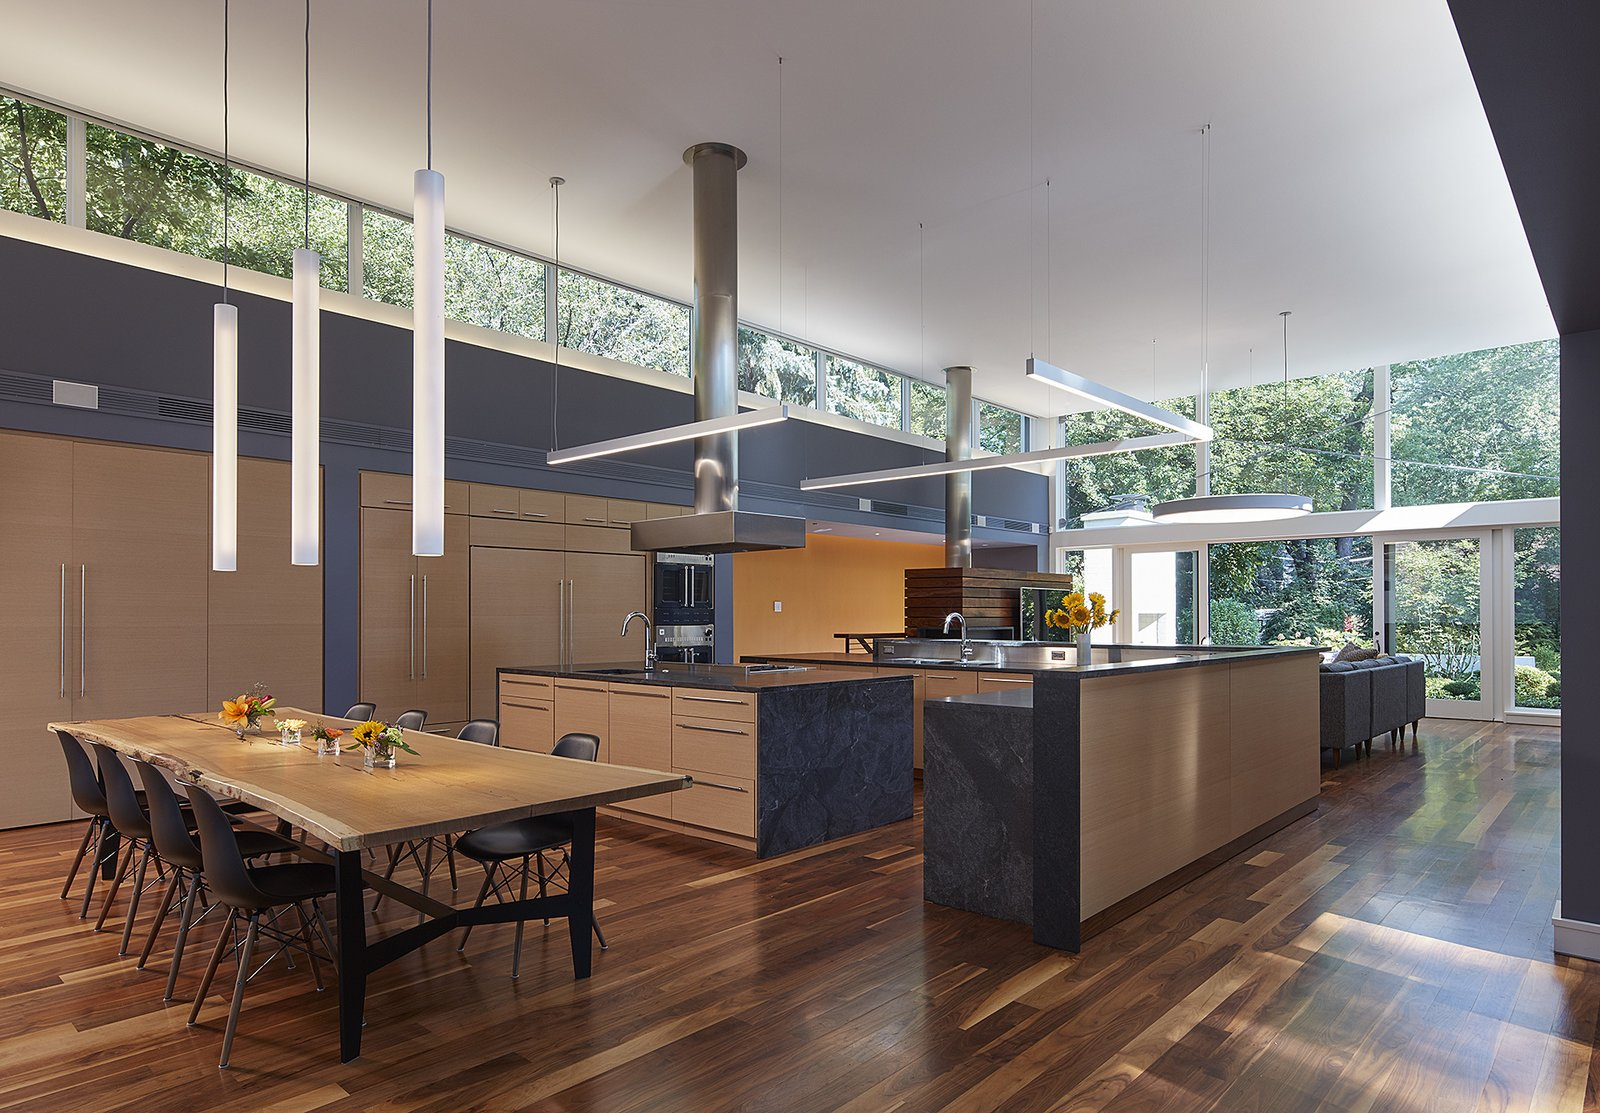 Courtyard residence Kuklinski + Rappe Architects Chicago dining room kitchen